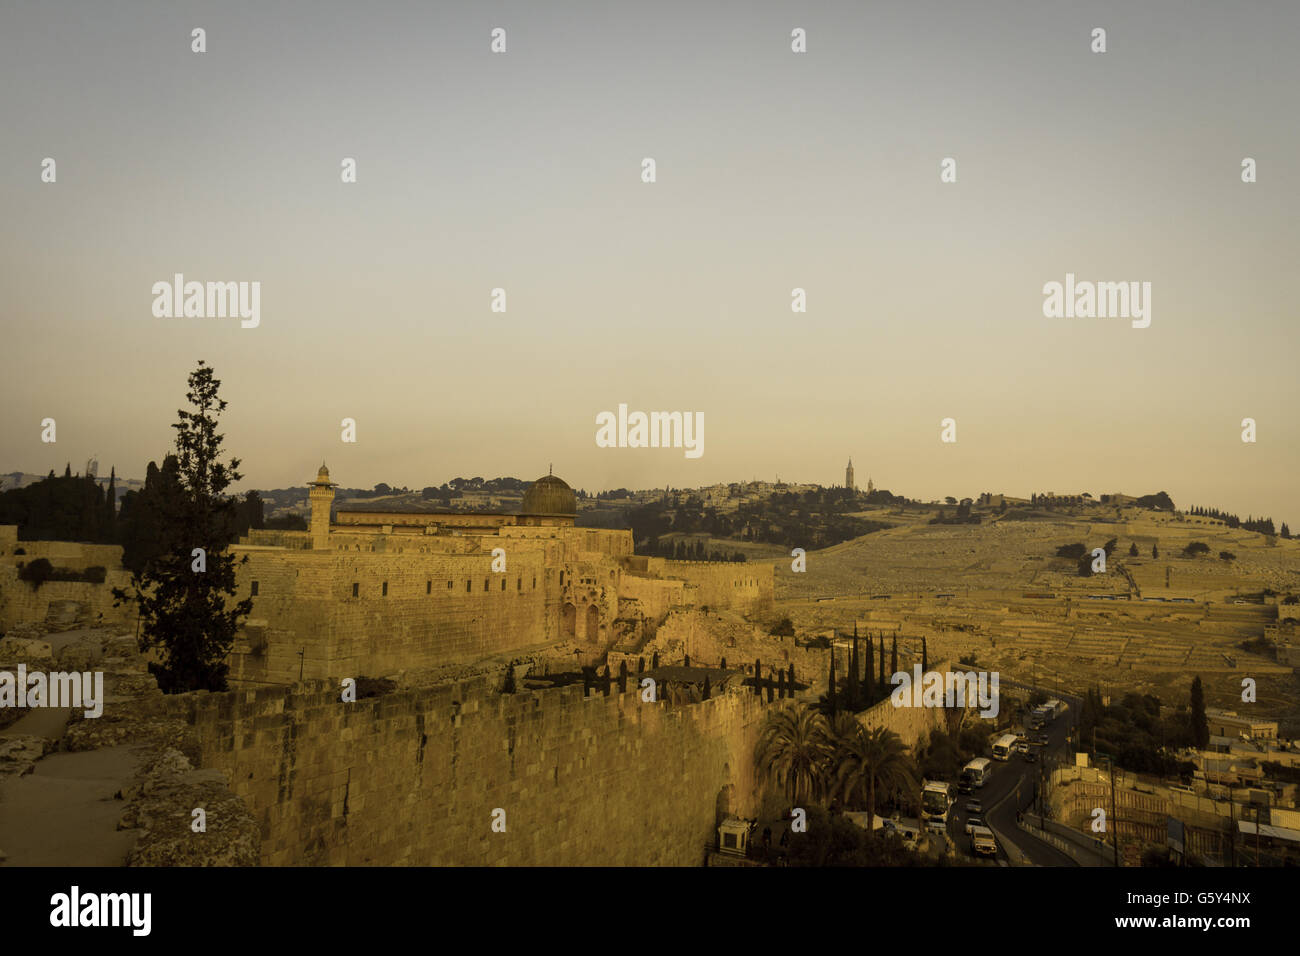 View of Jerusalem - Stock Image